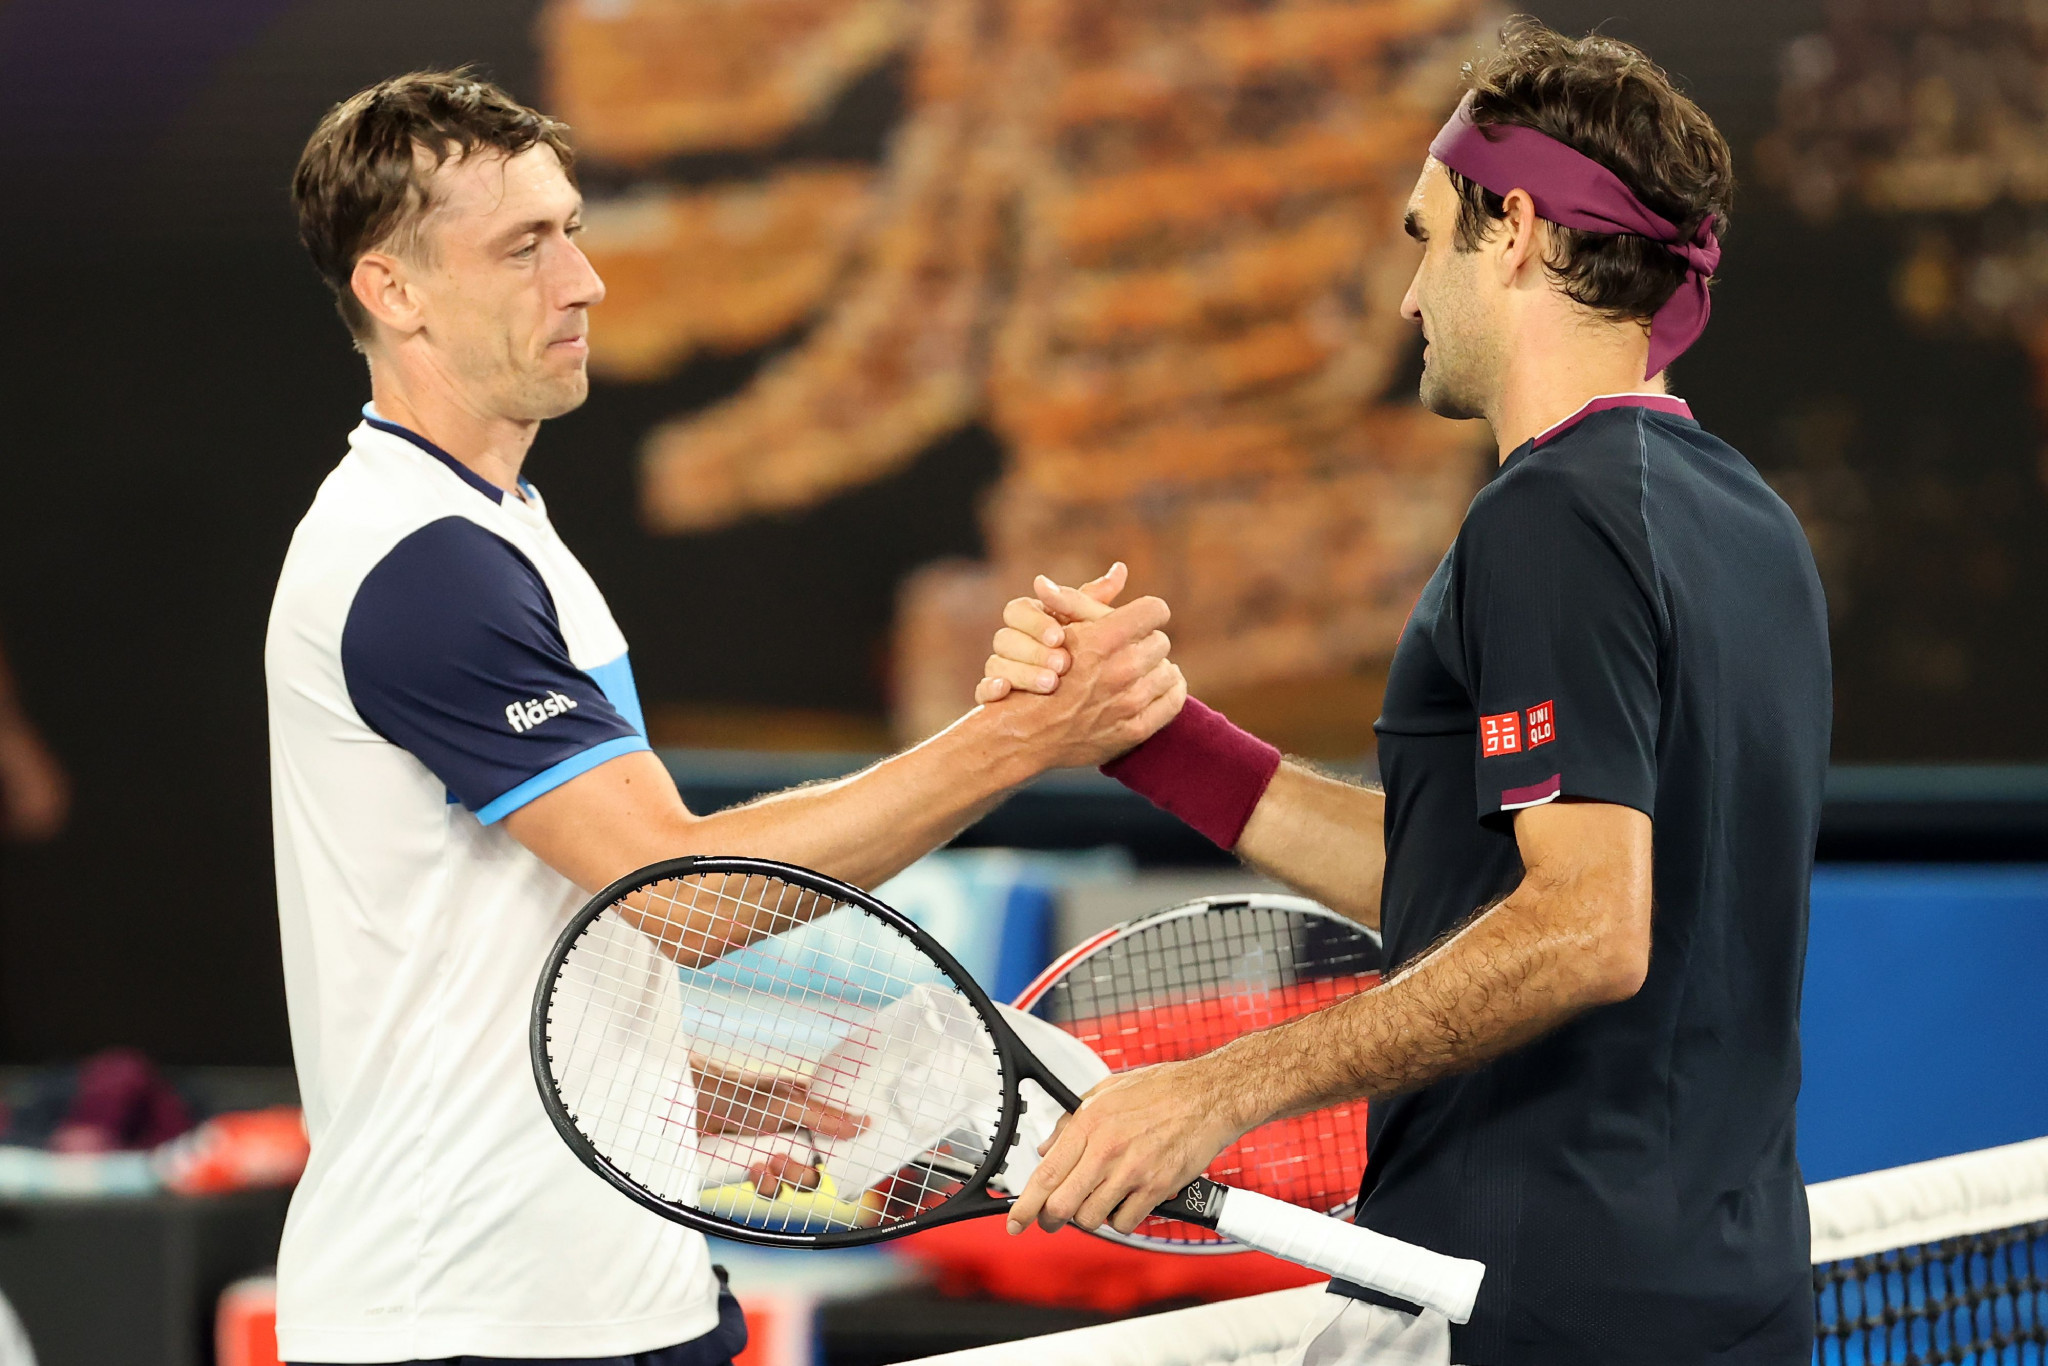 Australia's John Millman, left, shakes hands with Roger Federer after losing his Australian Open third round match on a tie-breaker in Melbourne - after which allegations were made that he had been attempting to tamper with the balls before he served them ©Getty Images